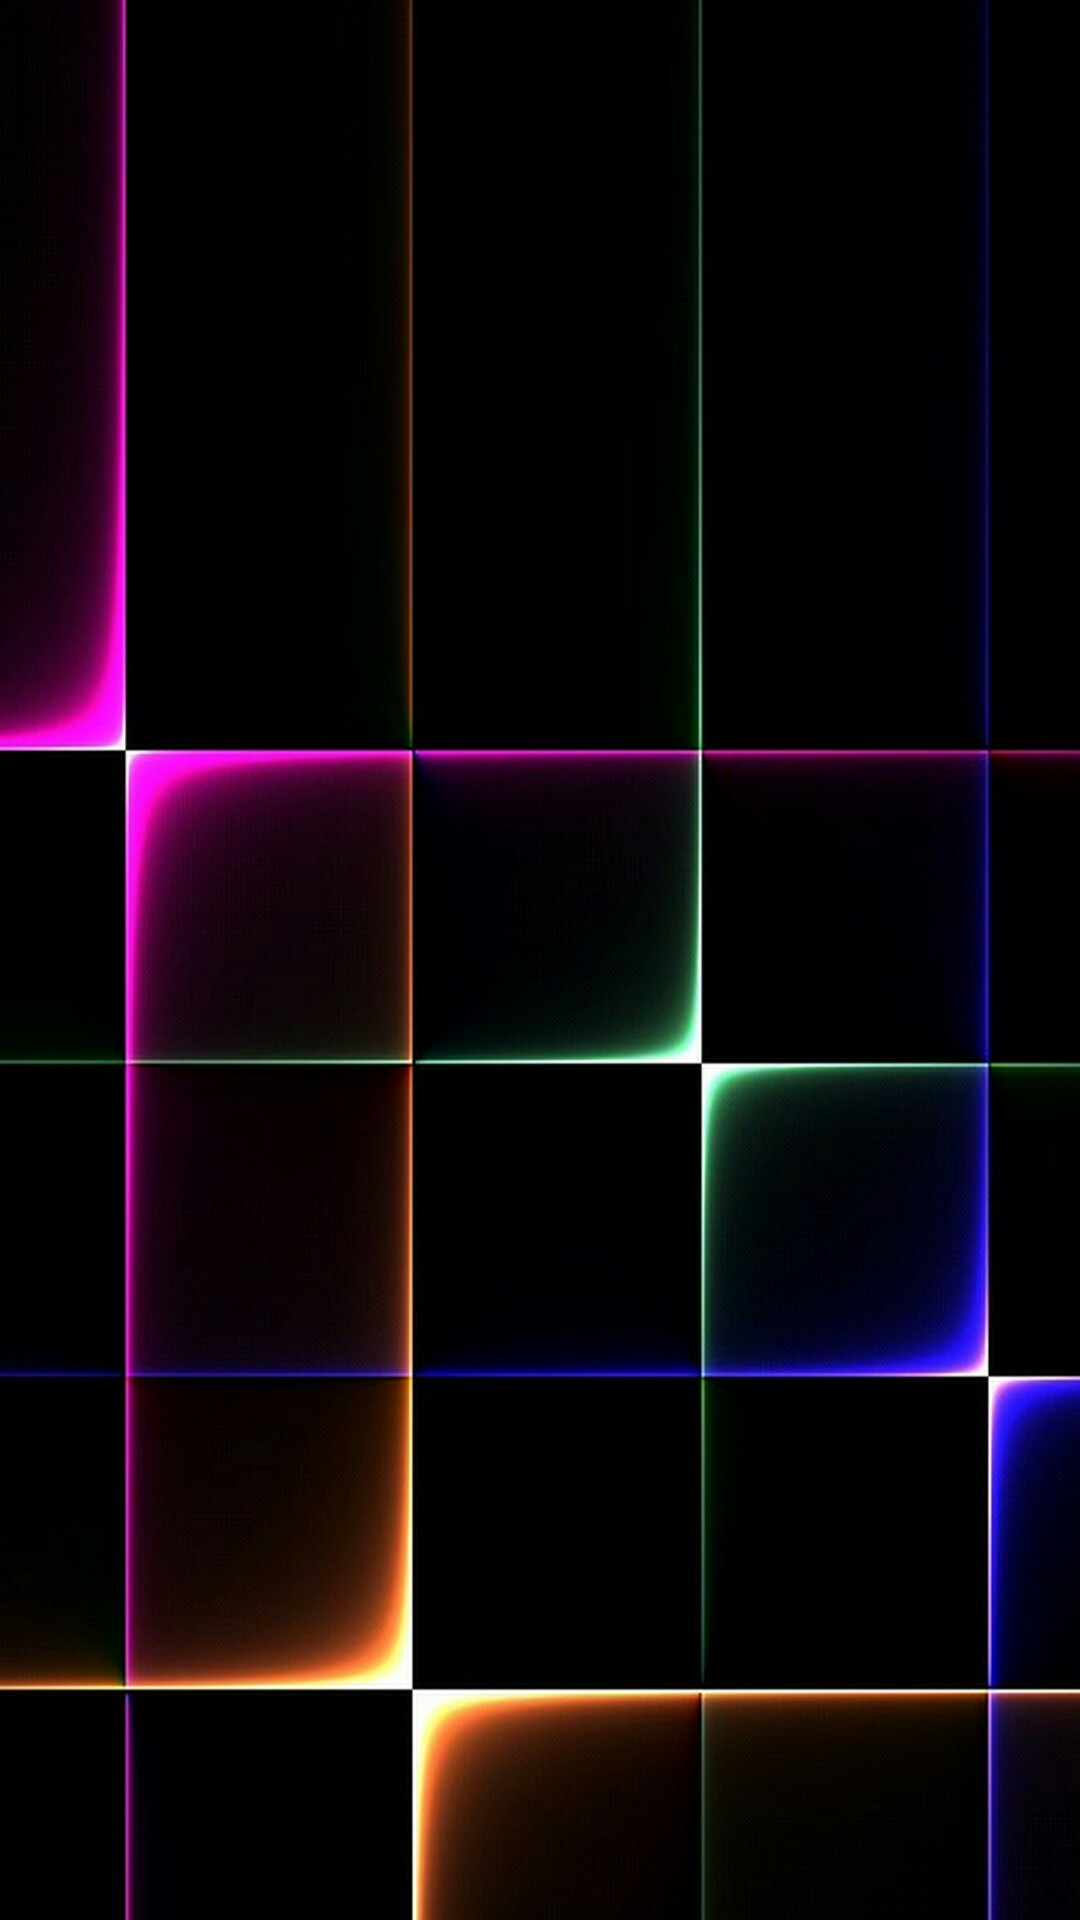 Cool Wallpaper Backgrounds for Phone (76+ images)